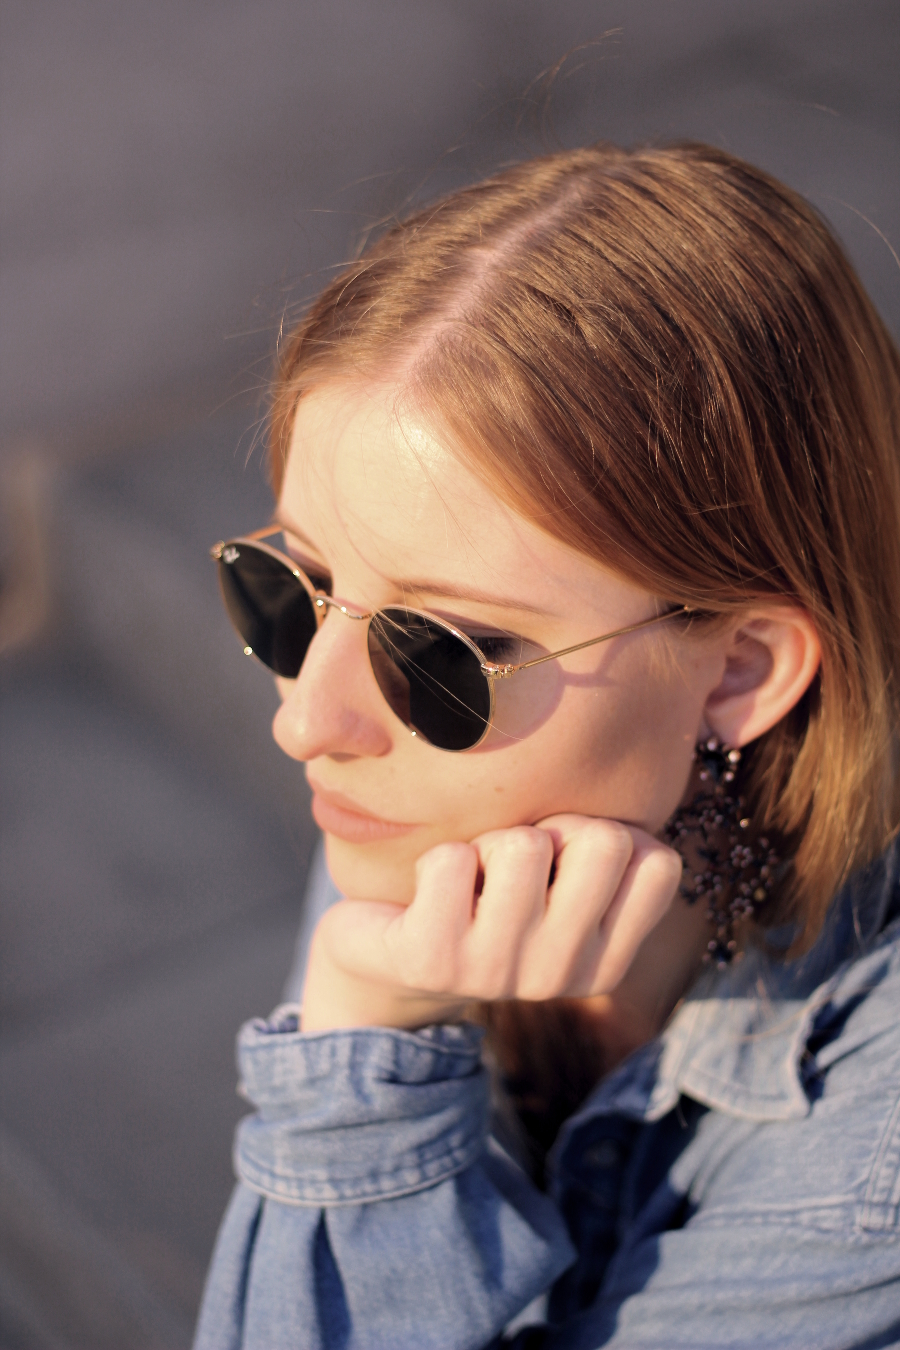 outfit close face ray ban round hippie zara earrings jeans shirt blogger